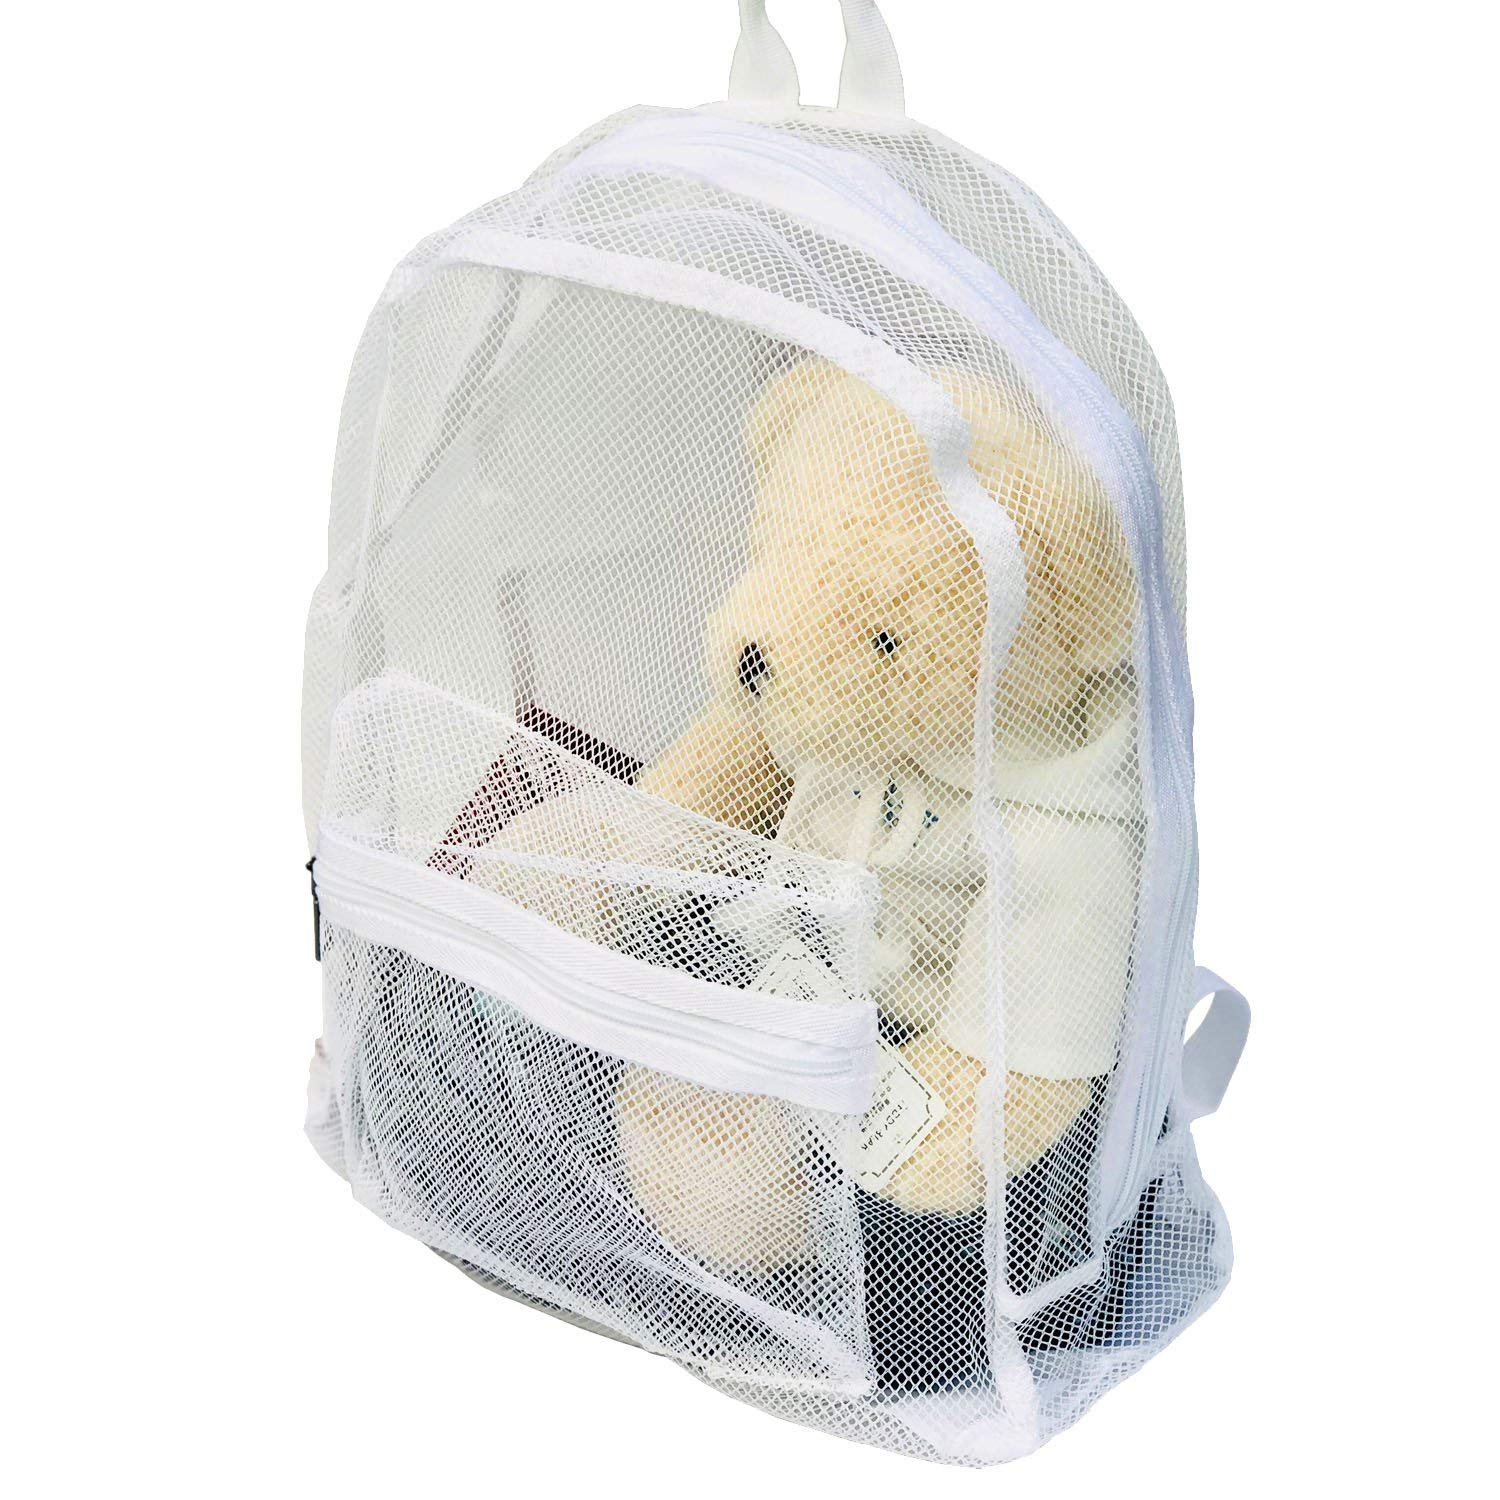 51e014e5a4 Get Quotations · Youndcc Foldable Mesh Backpack Ventilator Mesh Bag Mesh  Beach See Through Backpack Large Mesh Hiking Backpack